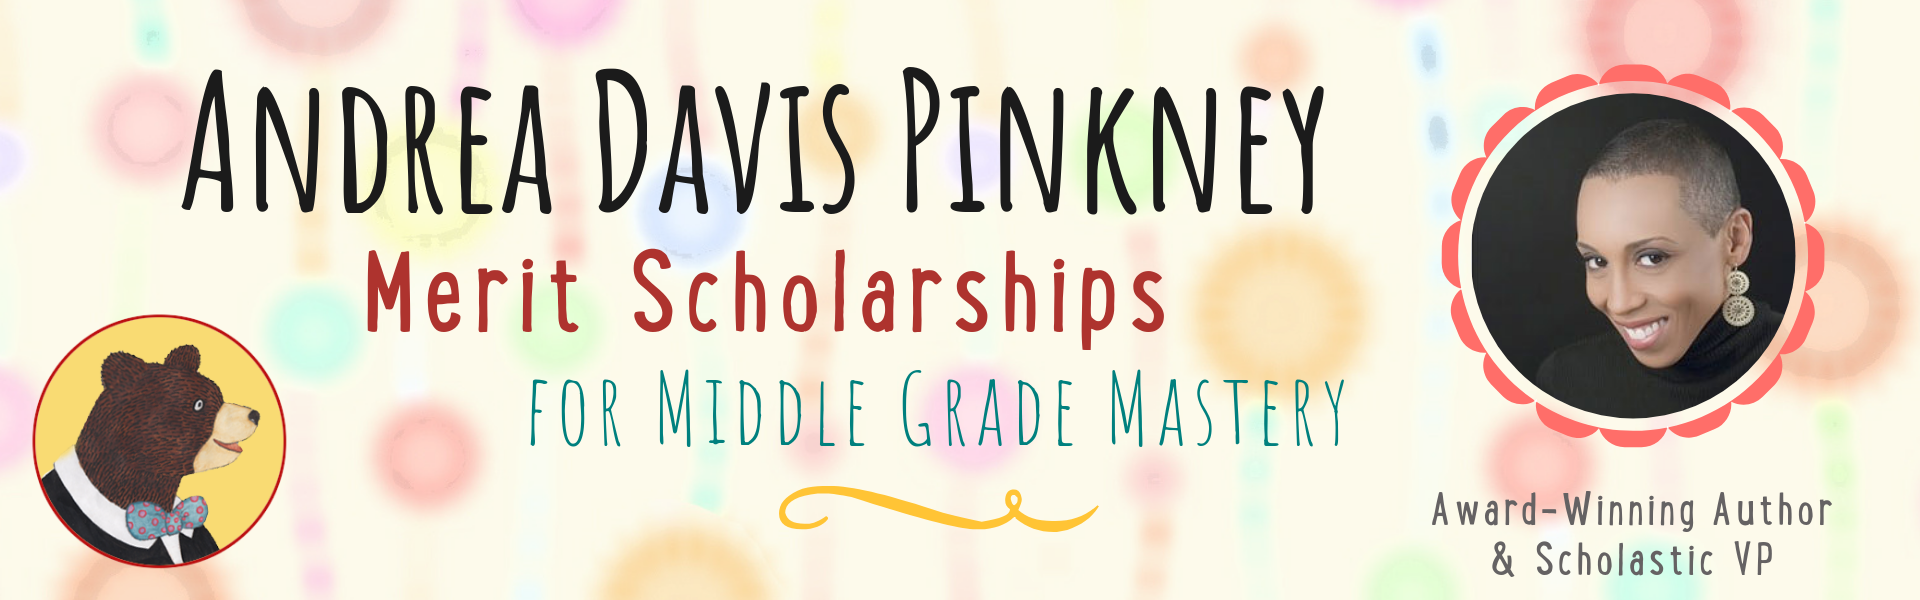 Andrea Davis Pinkney Merit Scholarships for our MIDDLE GRADE MASTERY at Children's Book Academy